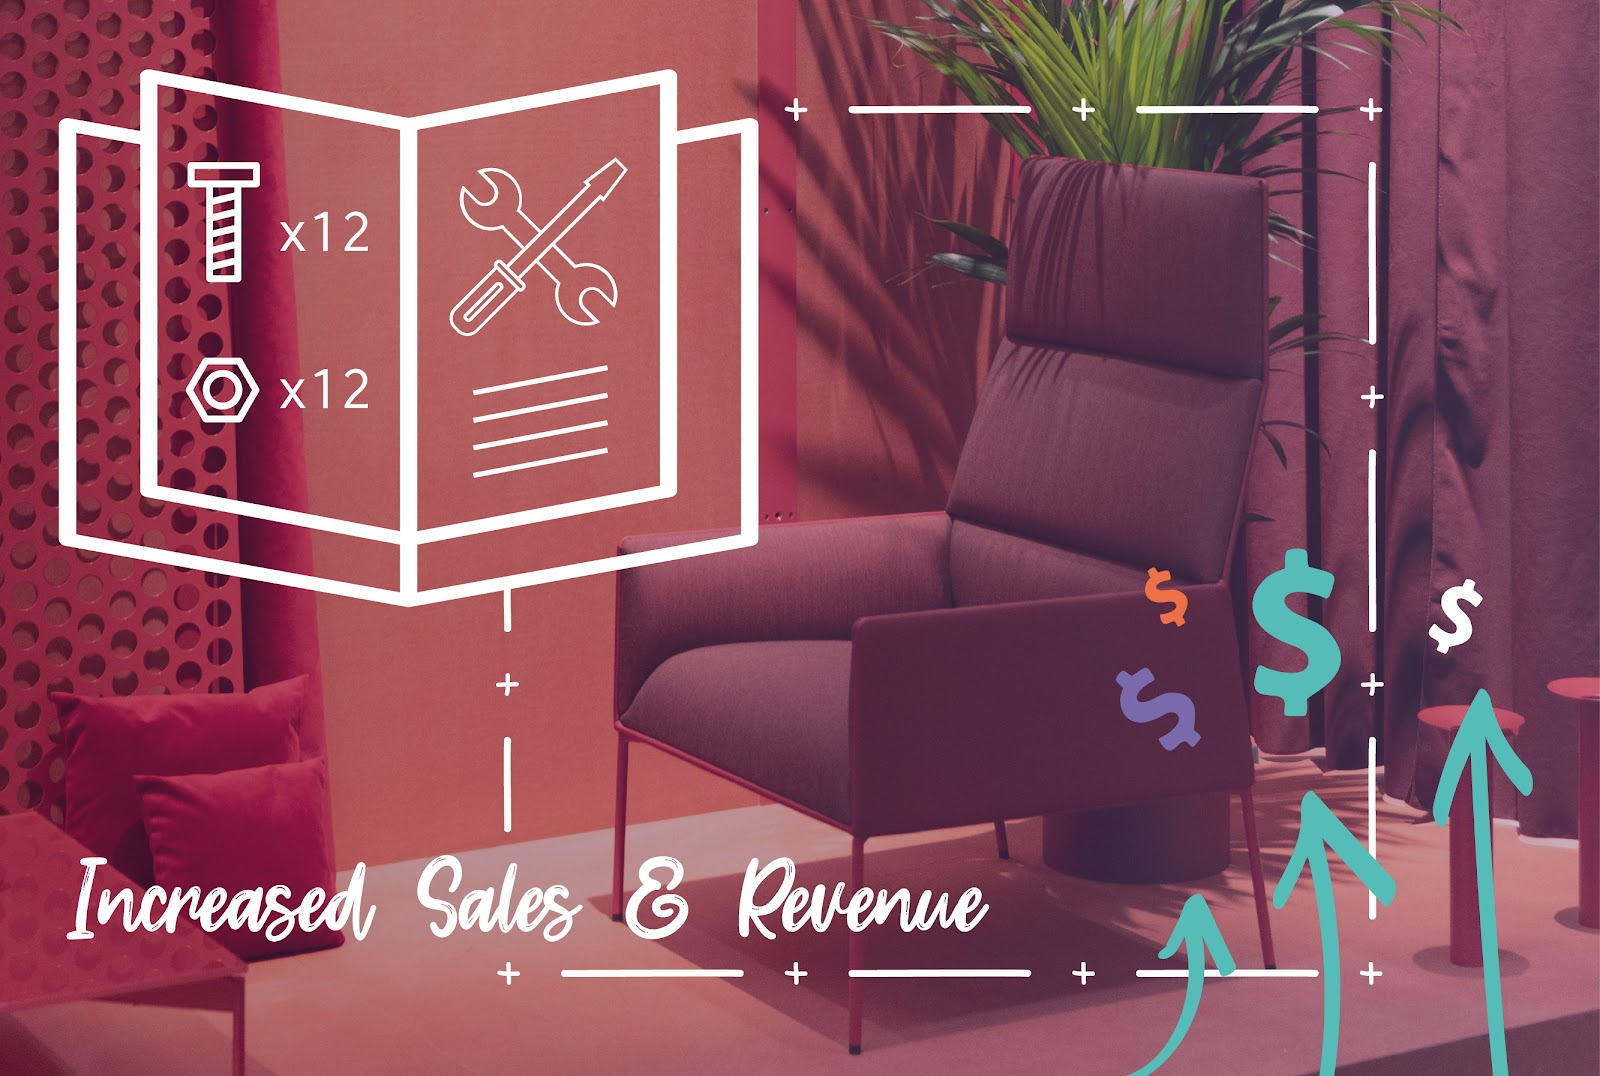 Furniture Marketing Sales and Revenue